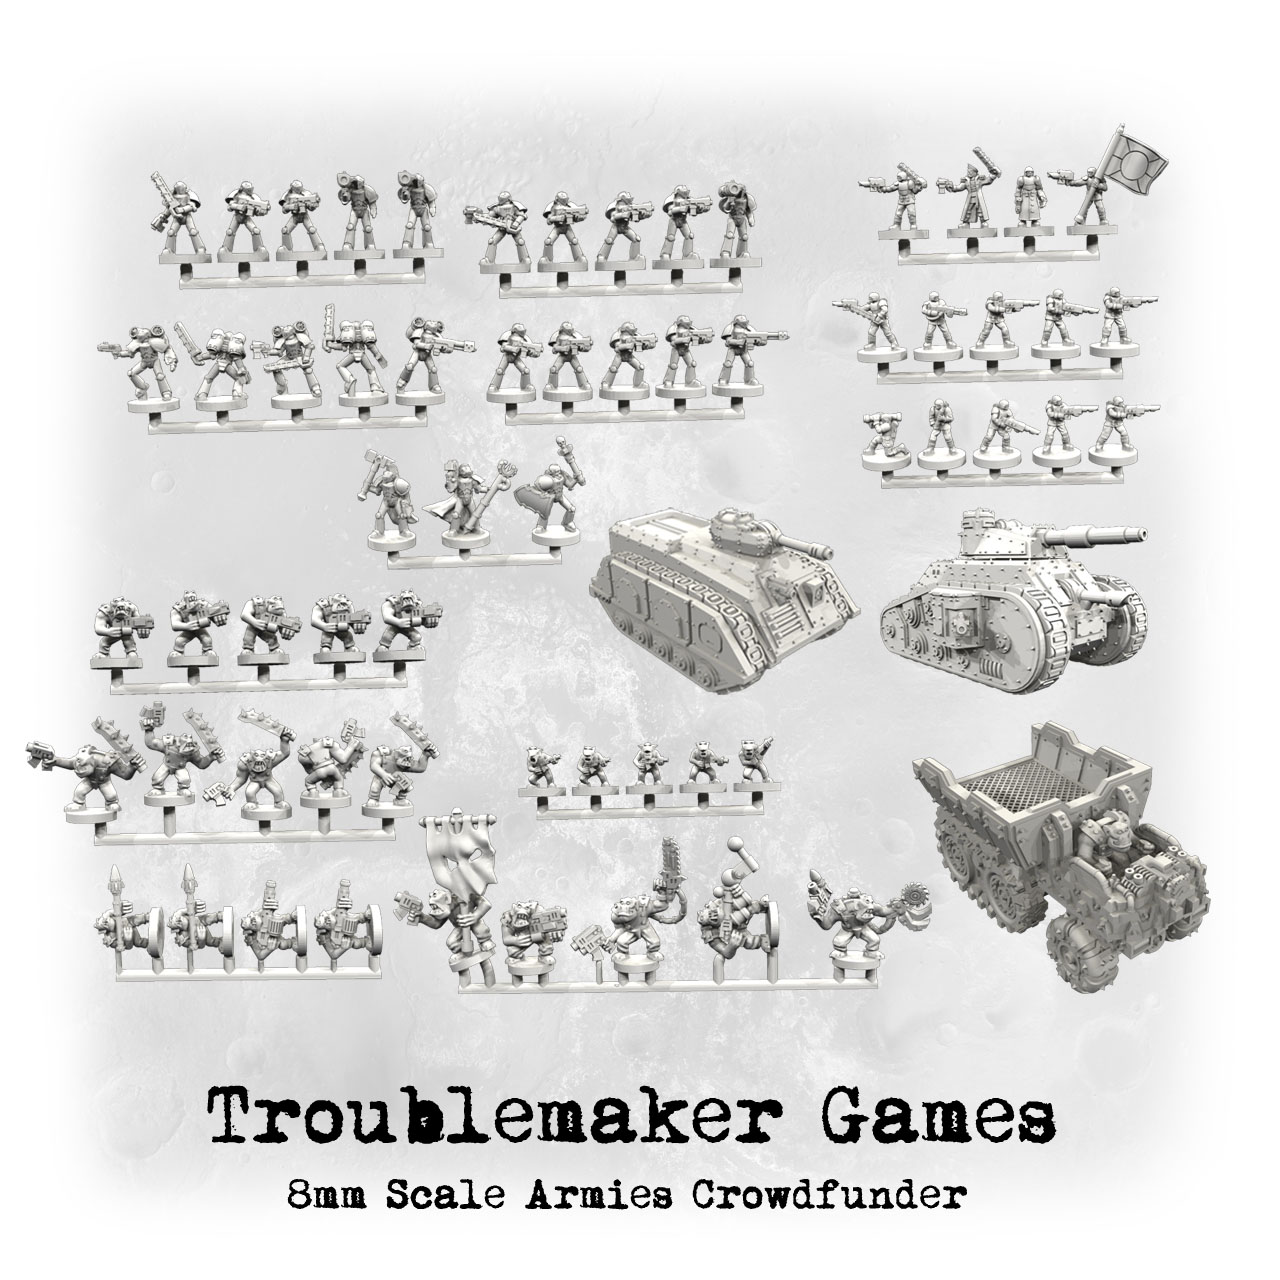 Troublemaker Games 8mm scale scifi crowdfunder B3cbf73ef376280216eb0205f4c4db17_20610